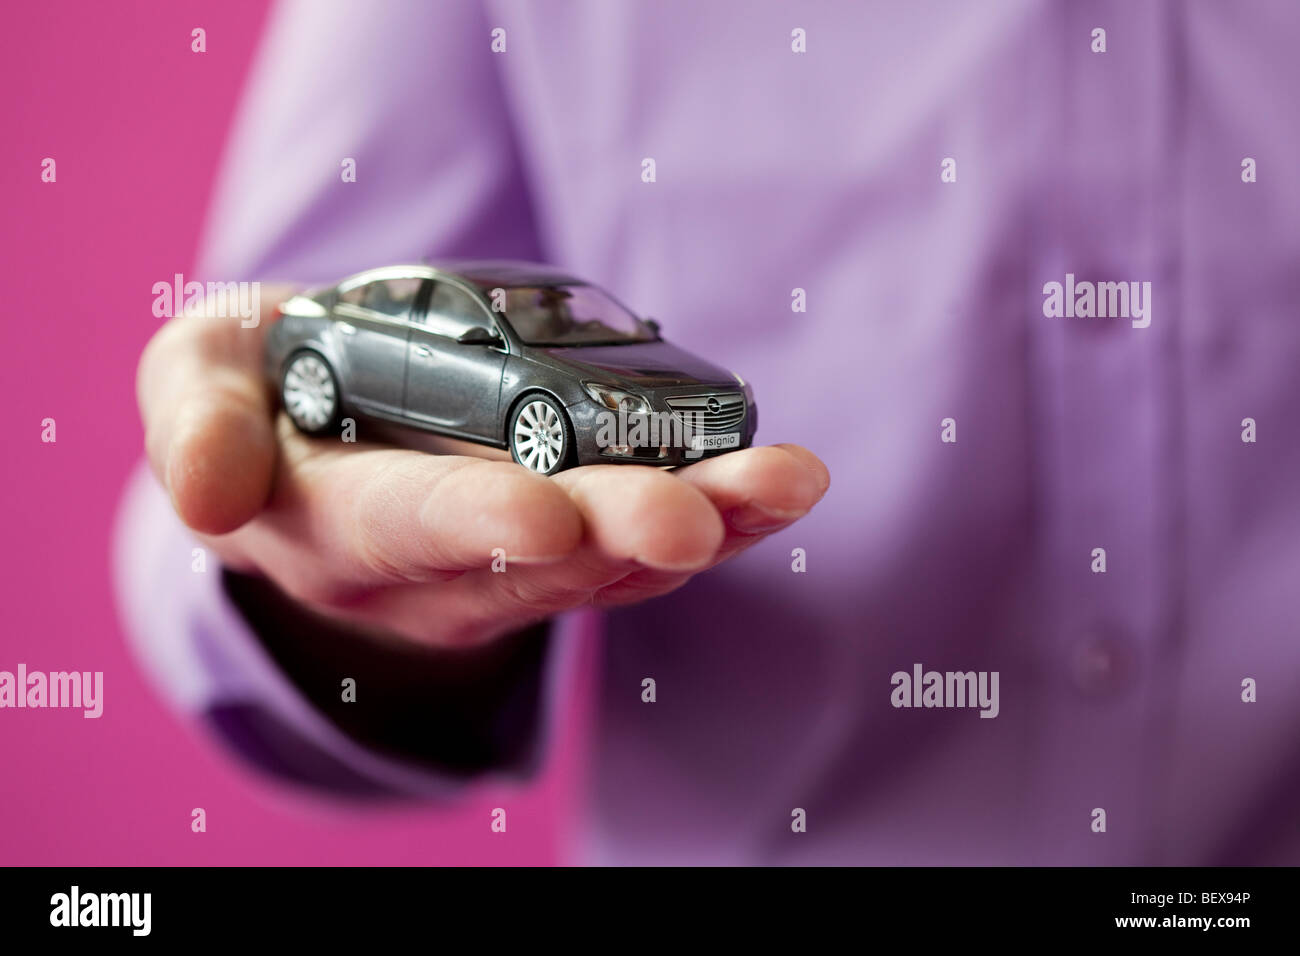 Young man holding a toy car - Stock Image